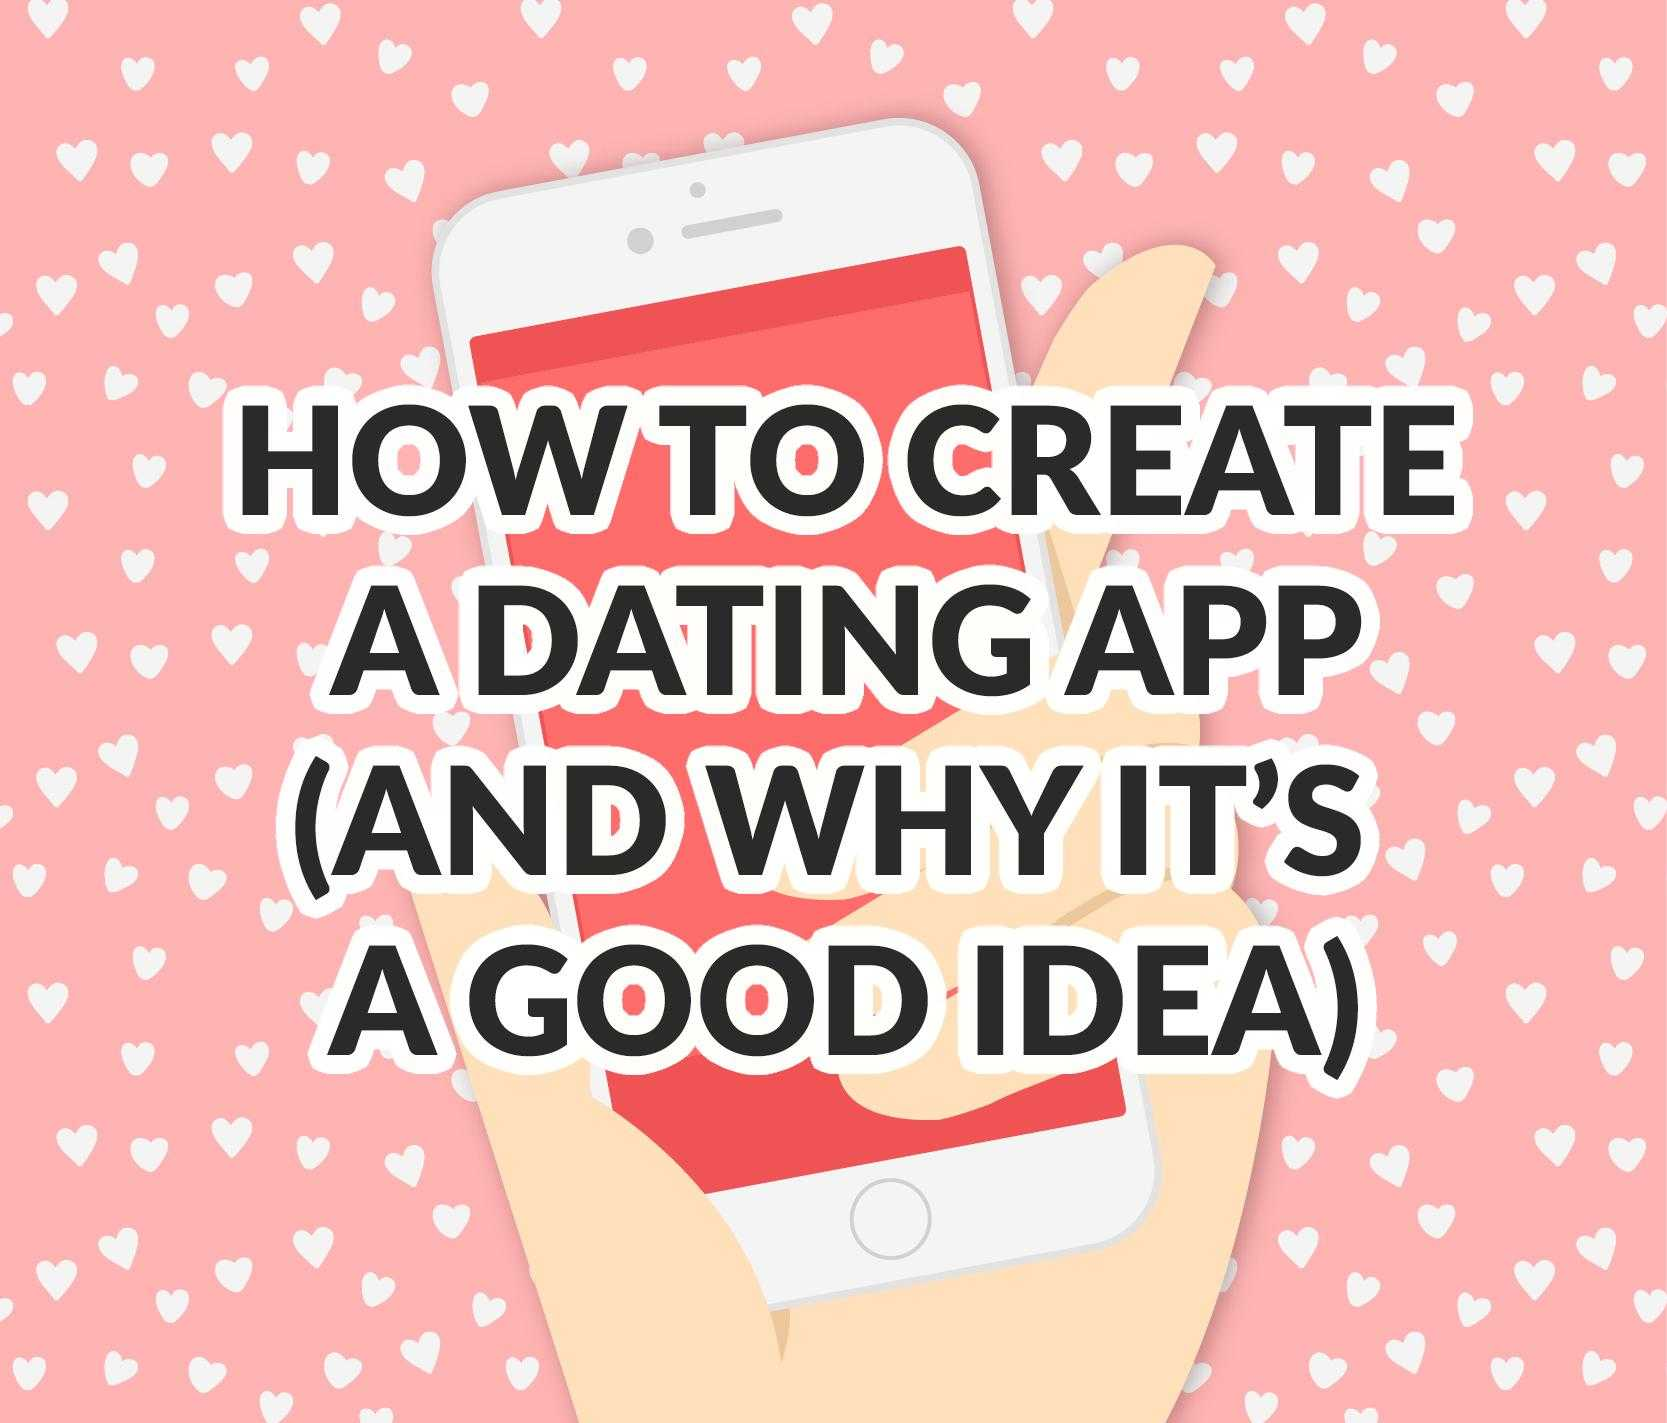 How to create a dating app by Adoriasoft Blog